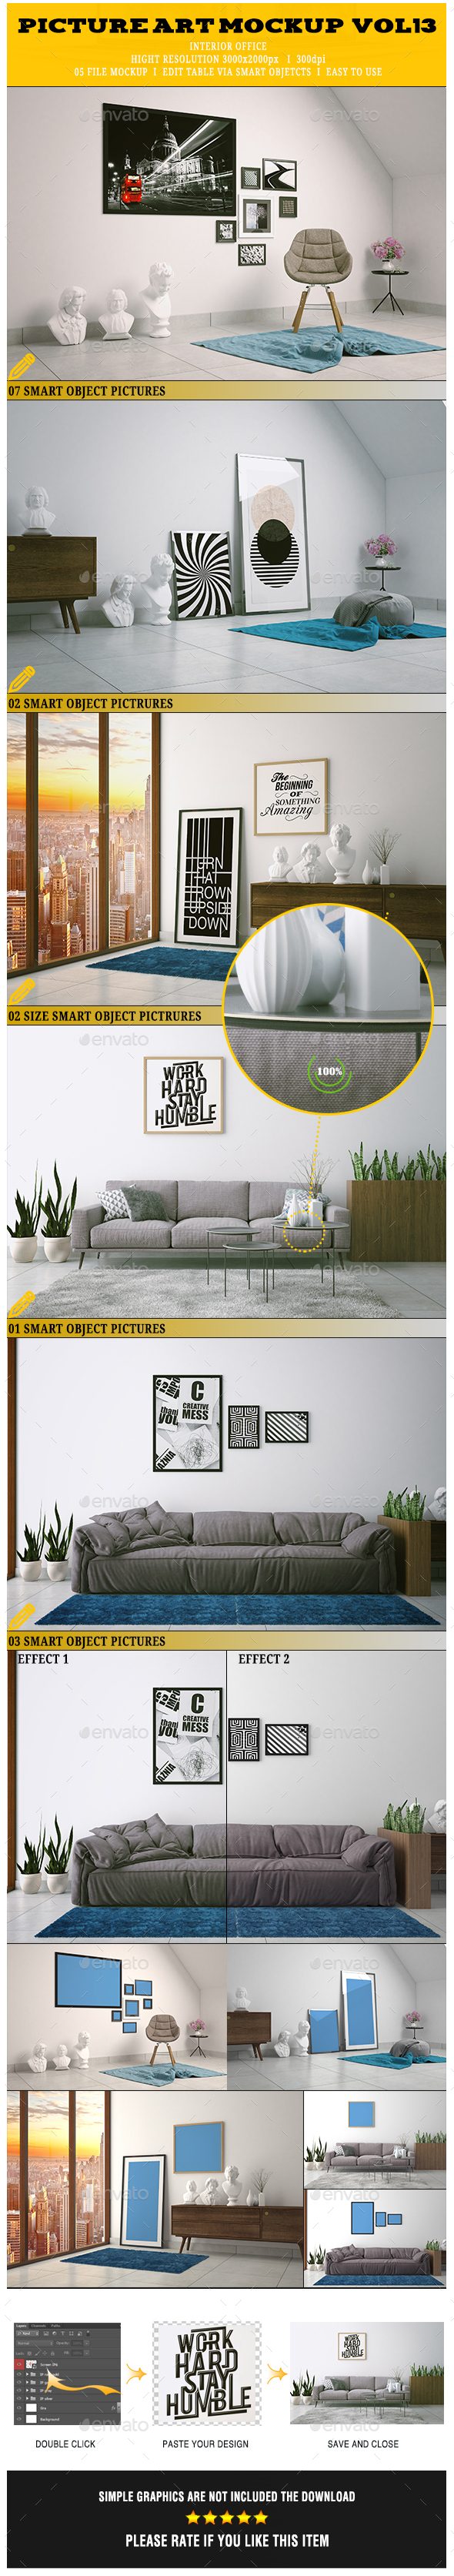 GraphicRiver Picture Art Mockup Vol[13] 20948456